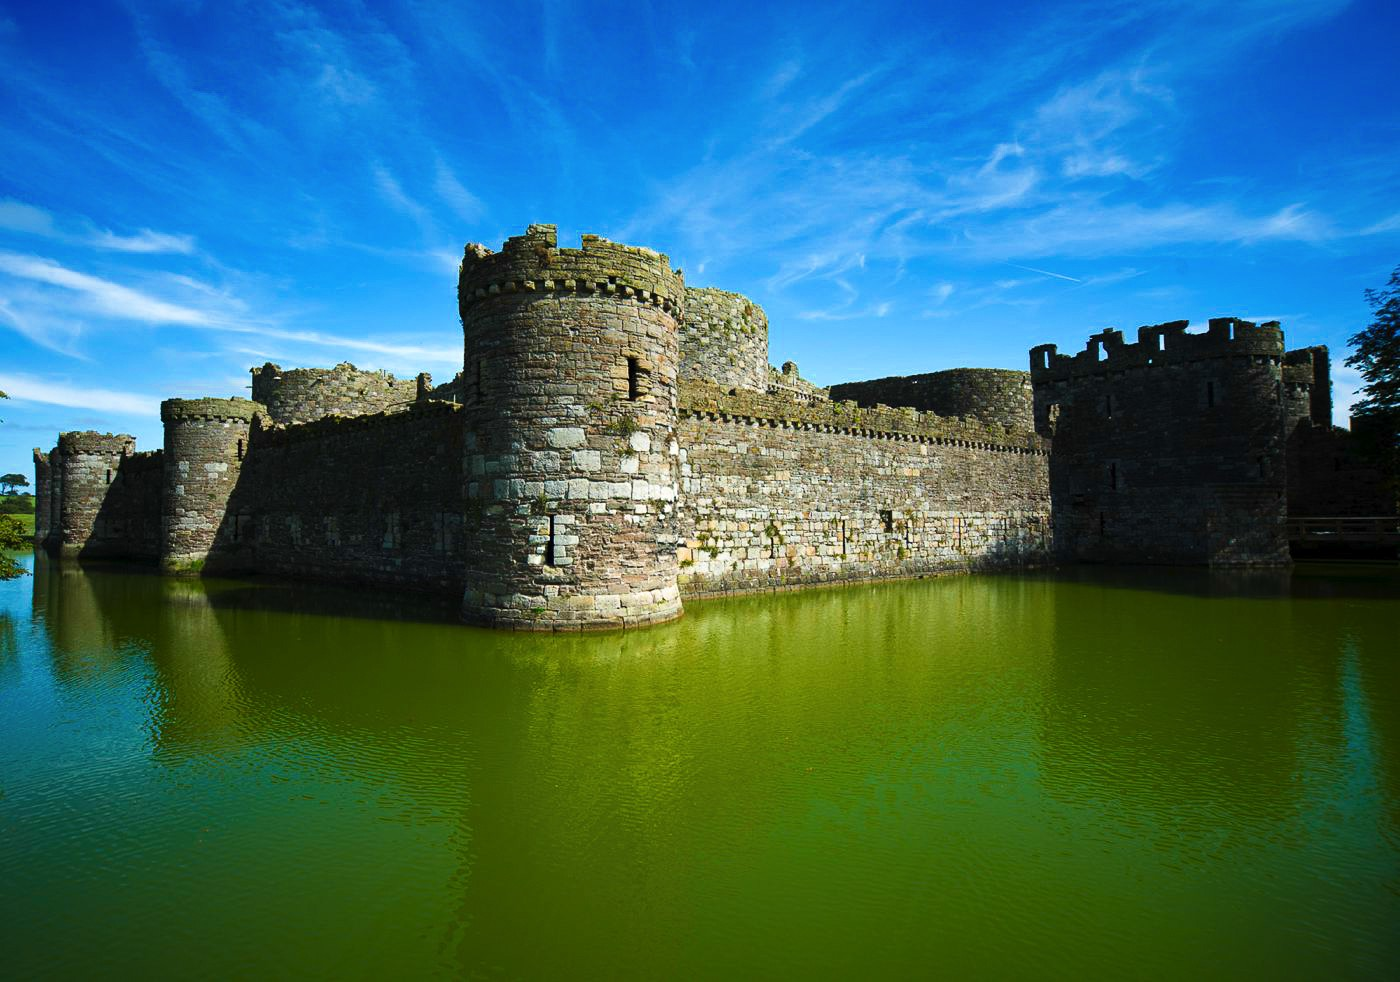 16 Fairytale Castles You Must See in Wales! Beaumaris Castle Caernarfon Castle Caerphilly Castle Carreg Cennen Castle Castell Coch Chepstow Castle Conwy Castle Criccieth Castle Denbigh Castle Dolwyddelan Castle Harlech Castle Kidwelly Castle Raglan Castle St Davids Bishop's Palace Tintern Abbey Tretower Court & Castle Weobley Castle (1)